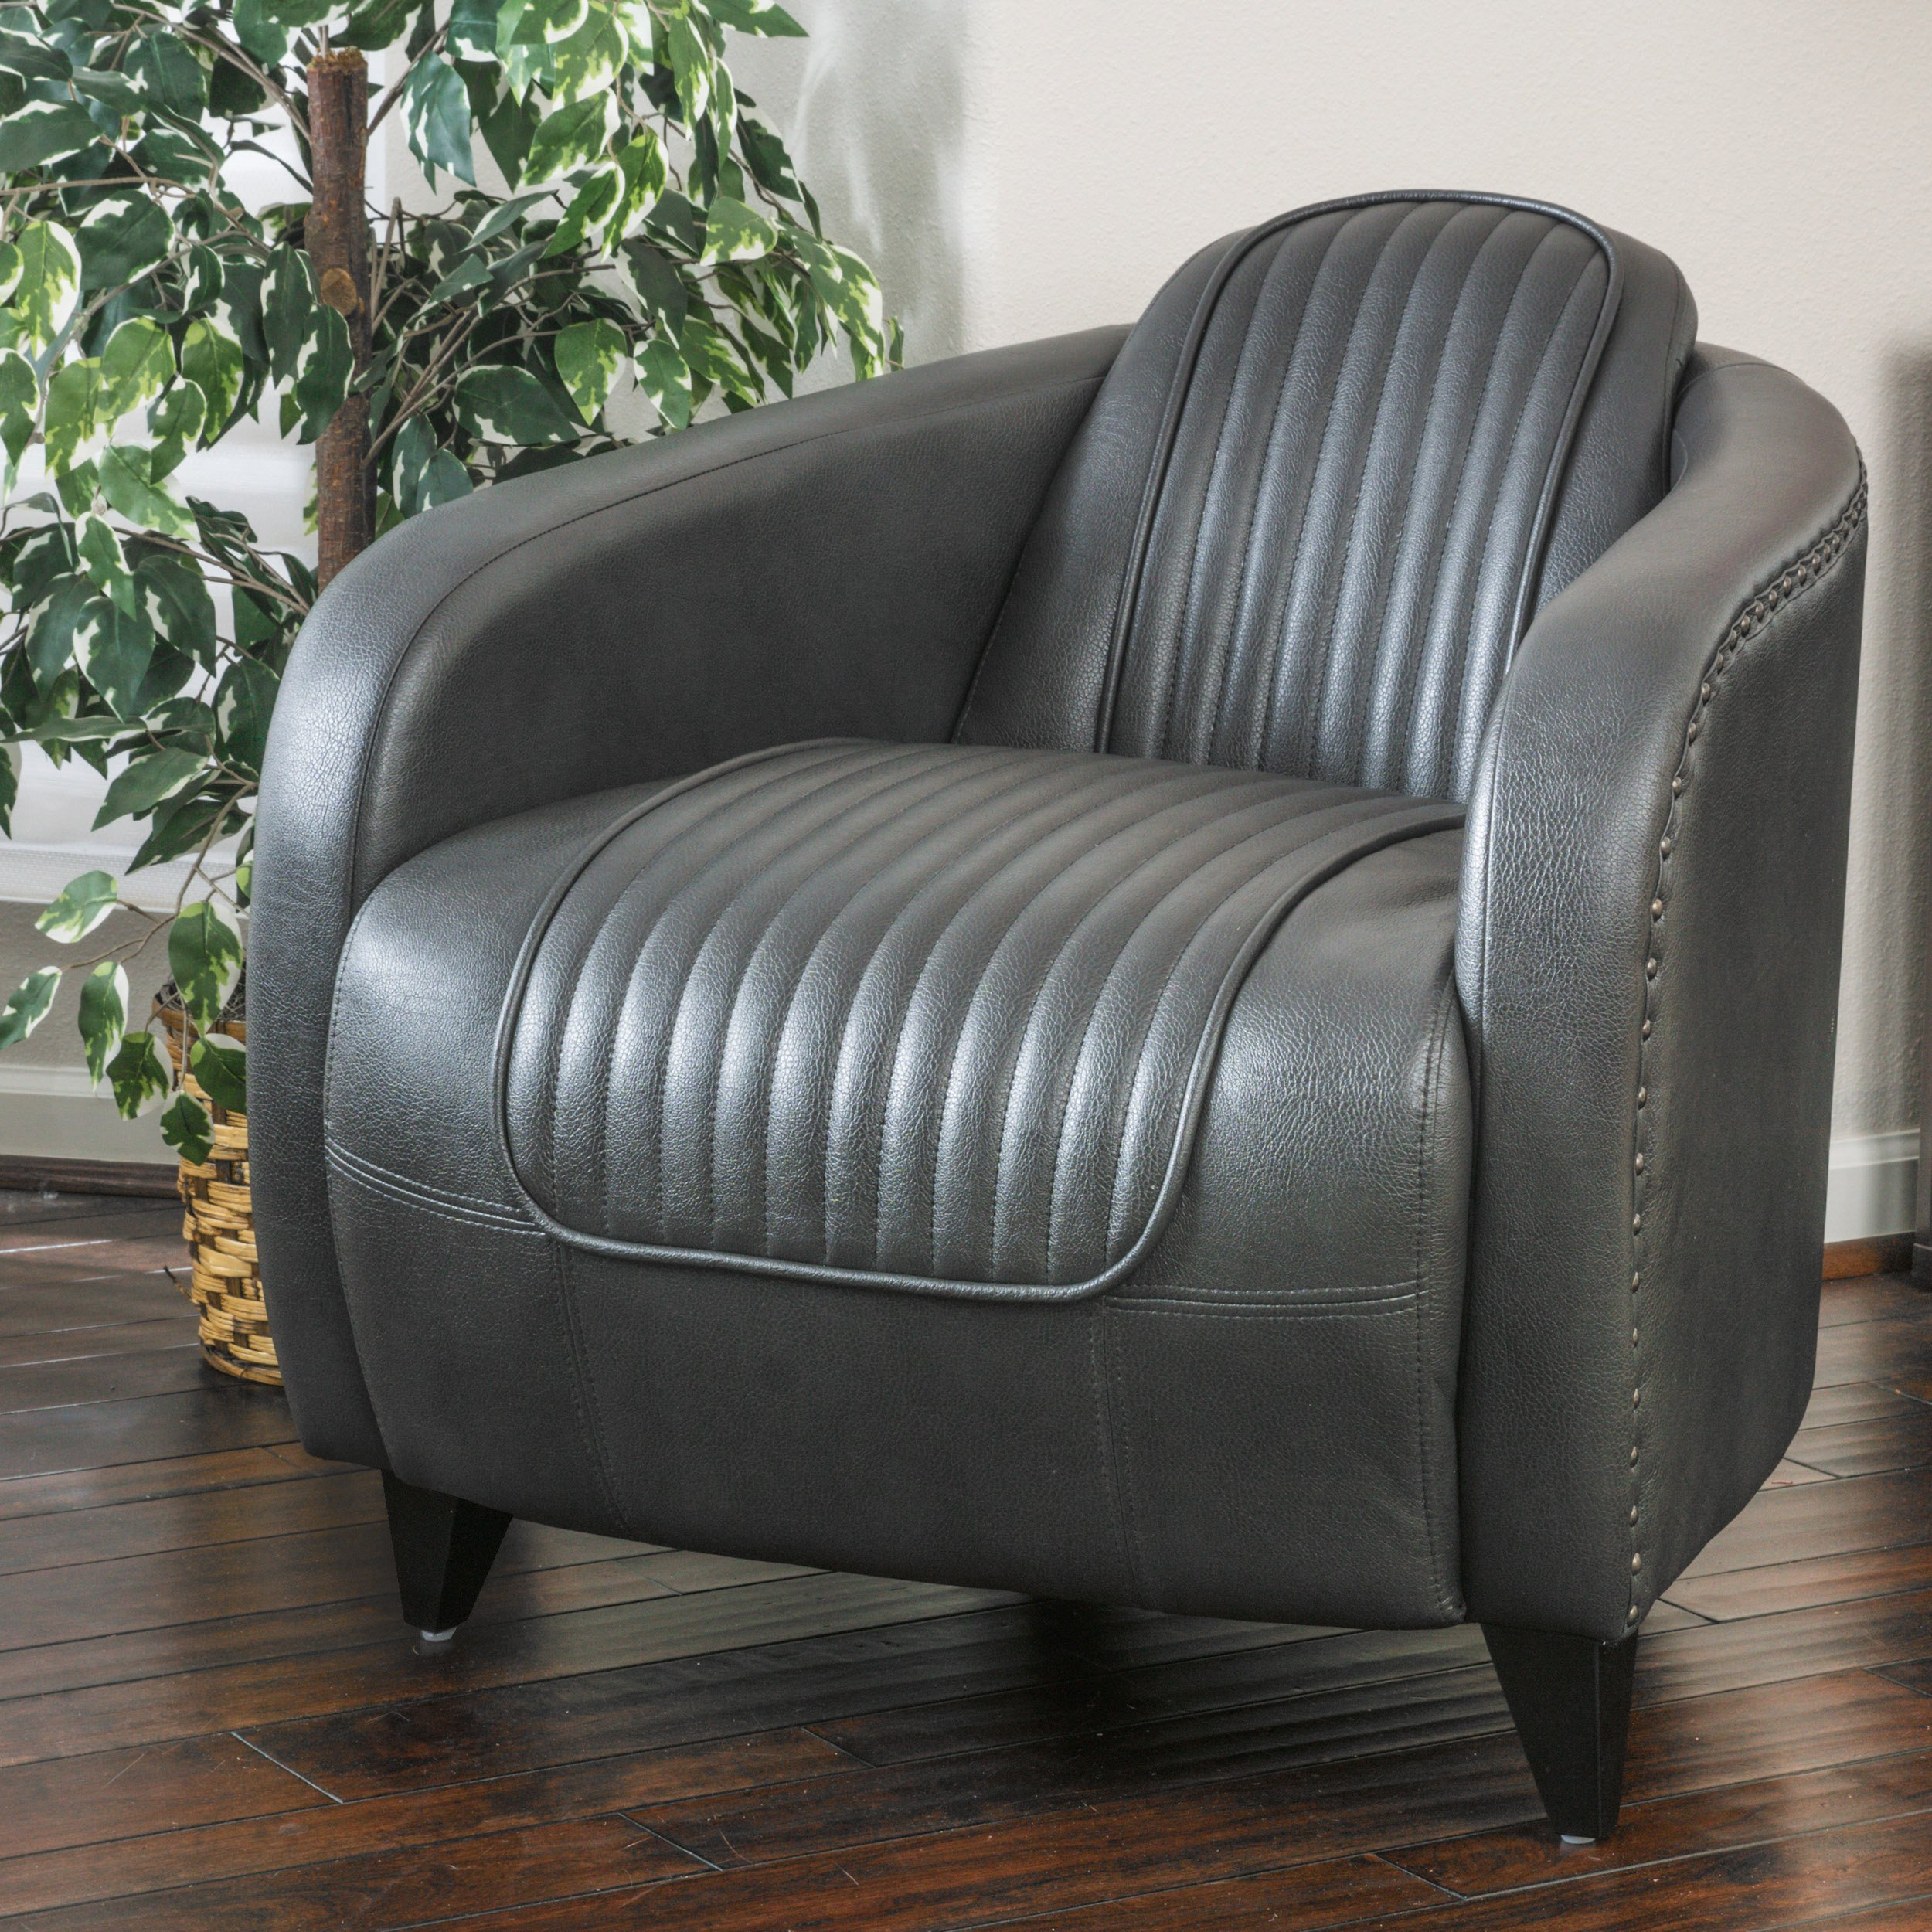 Christopher Knight Home 296289 Lemay Channeled Leather Club Chair, Roman Grey by Christopher Knight Home